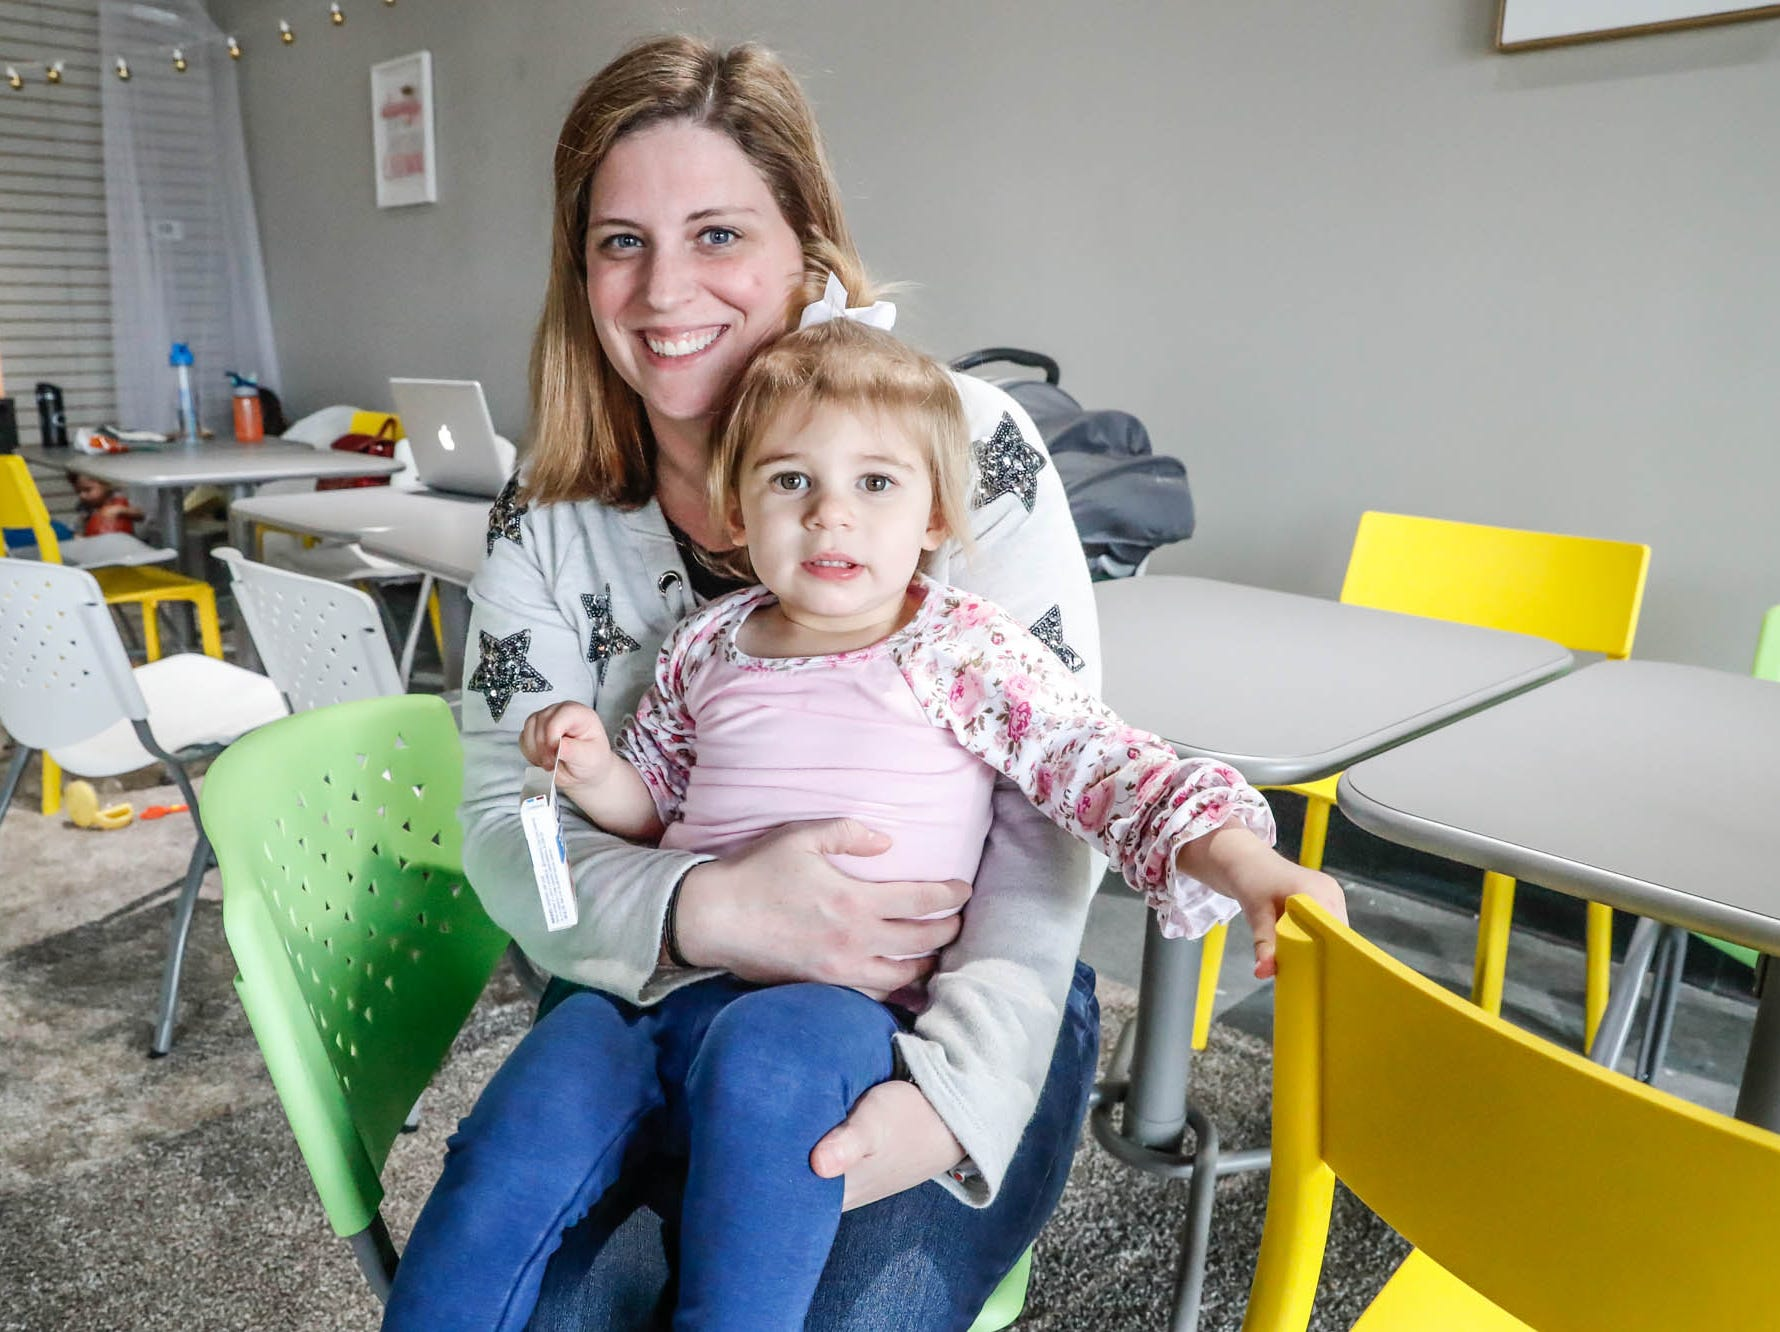 Becca Freidman, right, plays with her daughter Maddison Freidman sit at a cafe table in The Little Village Playroom, 9850 N. Michigan Rd, Carmel, Ind., on Tuesday, Feb. 5, 2019. The Play Room offers caregivers offers free coffee and free wifi to work or check emails.